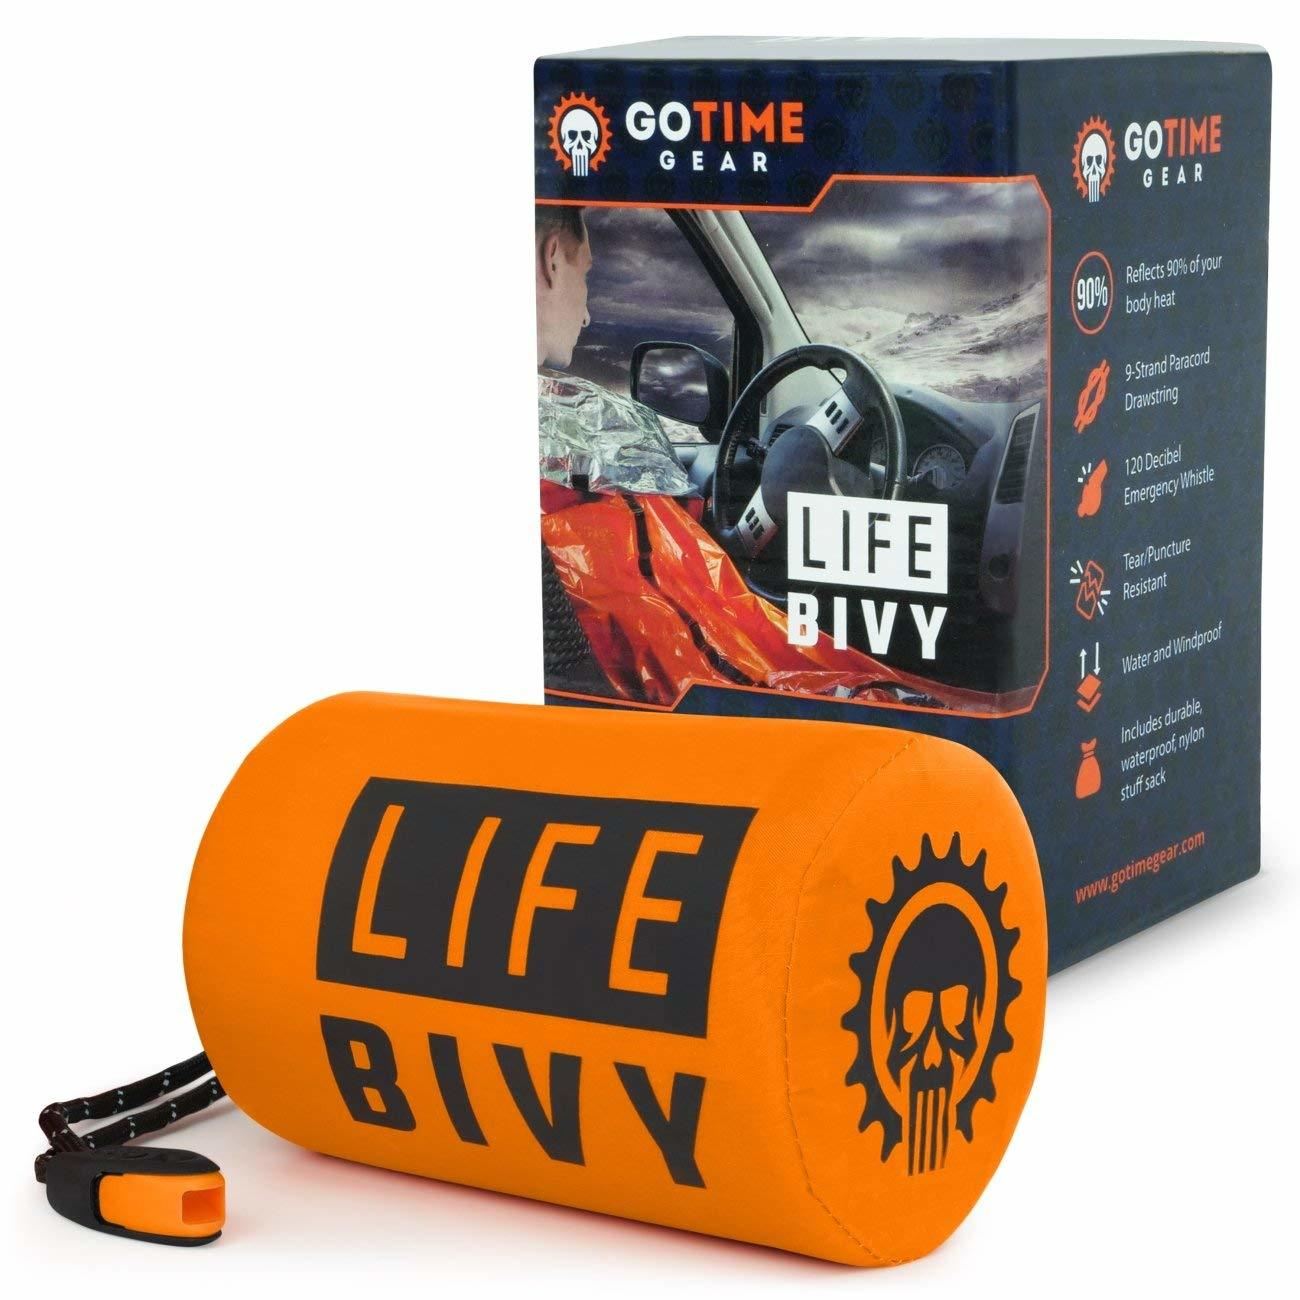 Life Bivy Emergency Sleeping Bag Thermal Bivvy